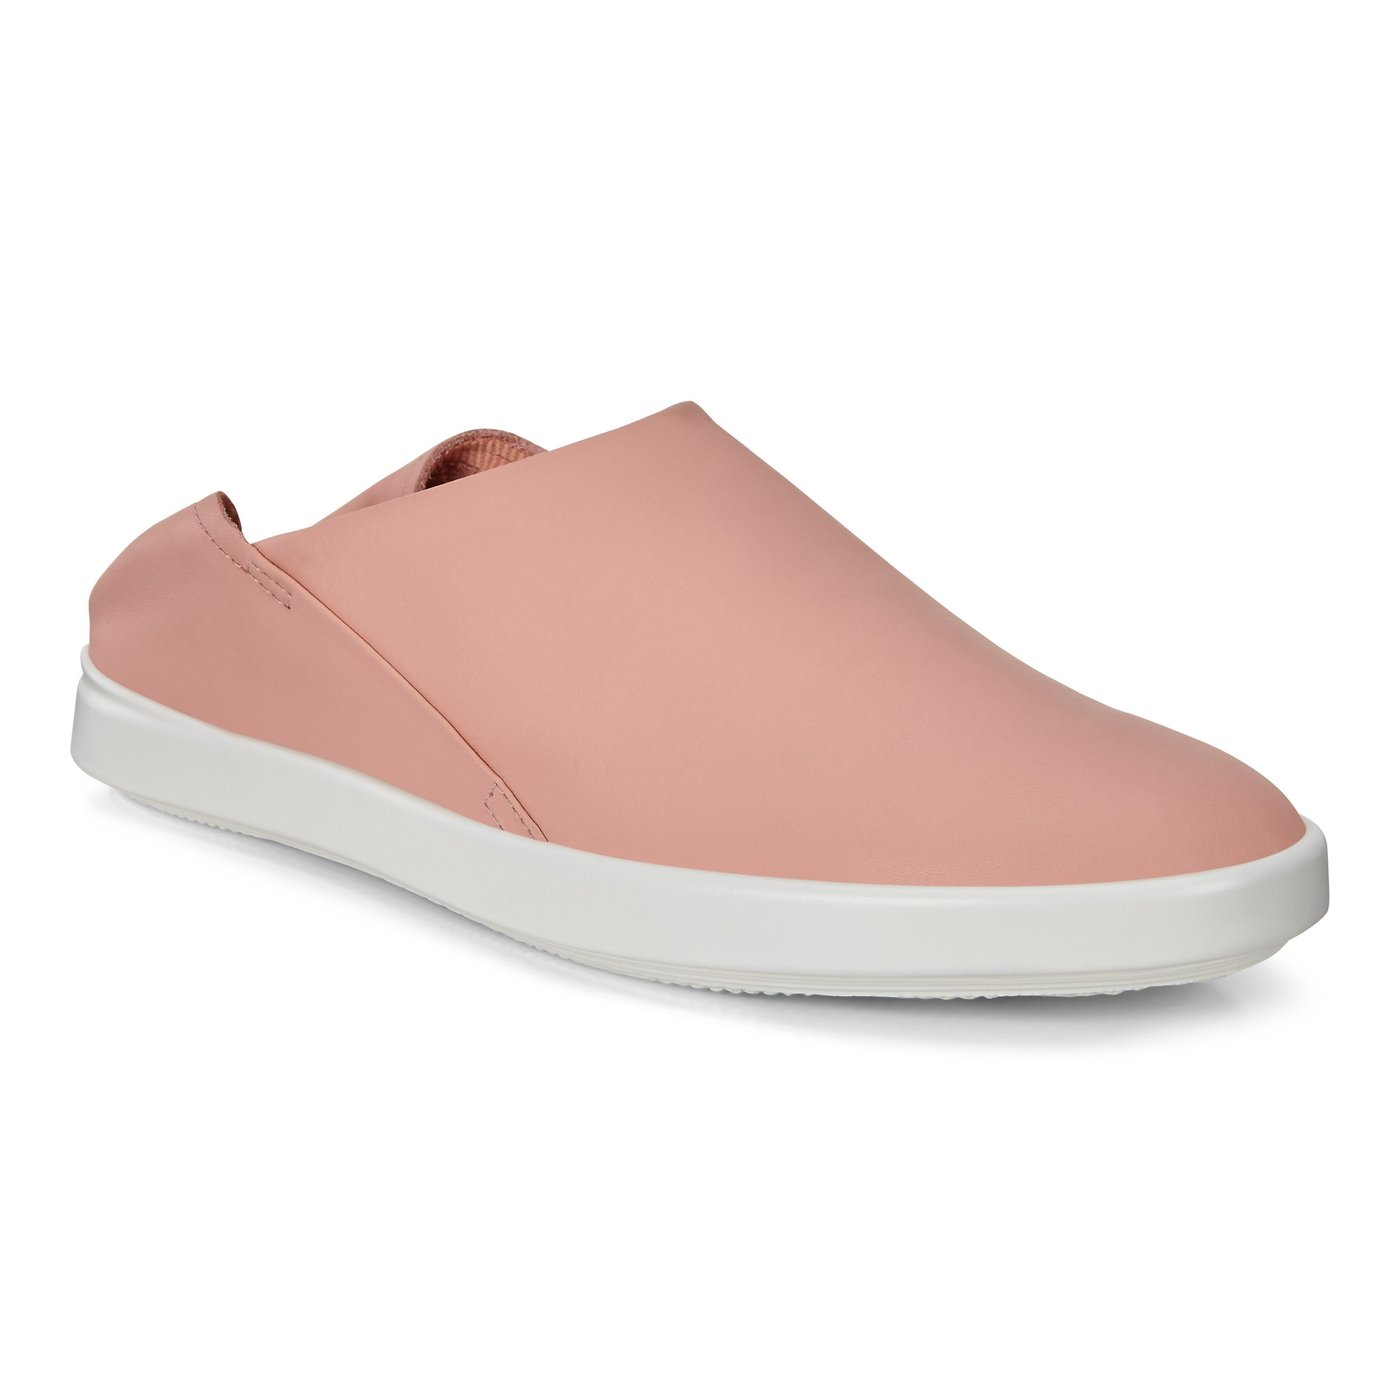 ECCO LEISURE Slip-on